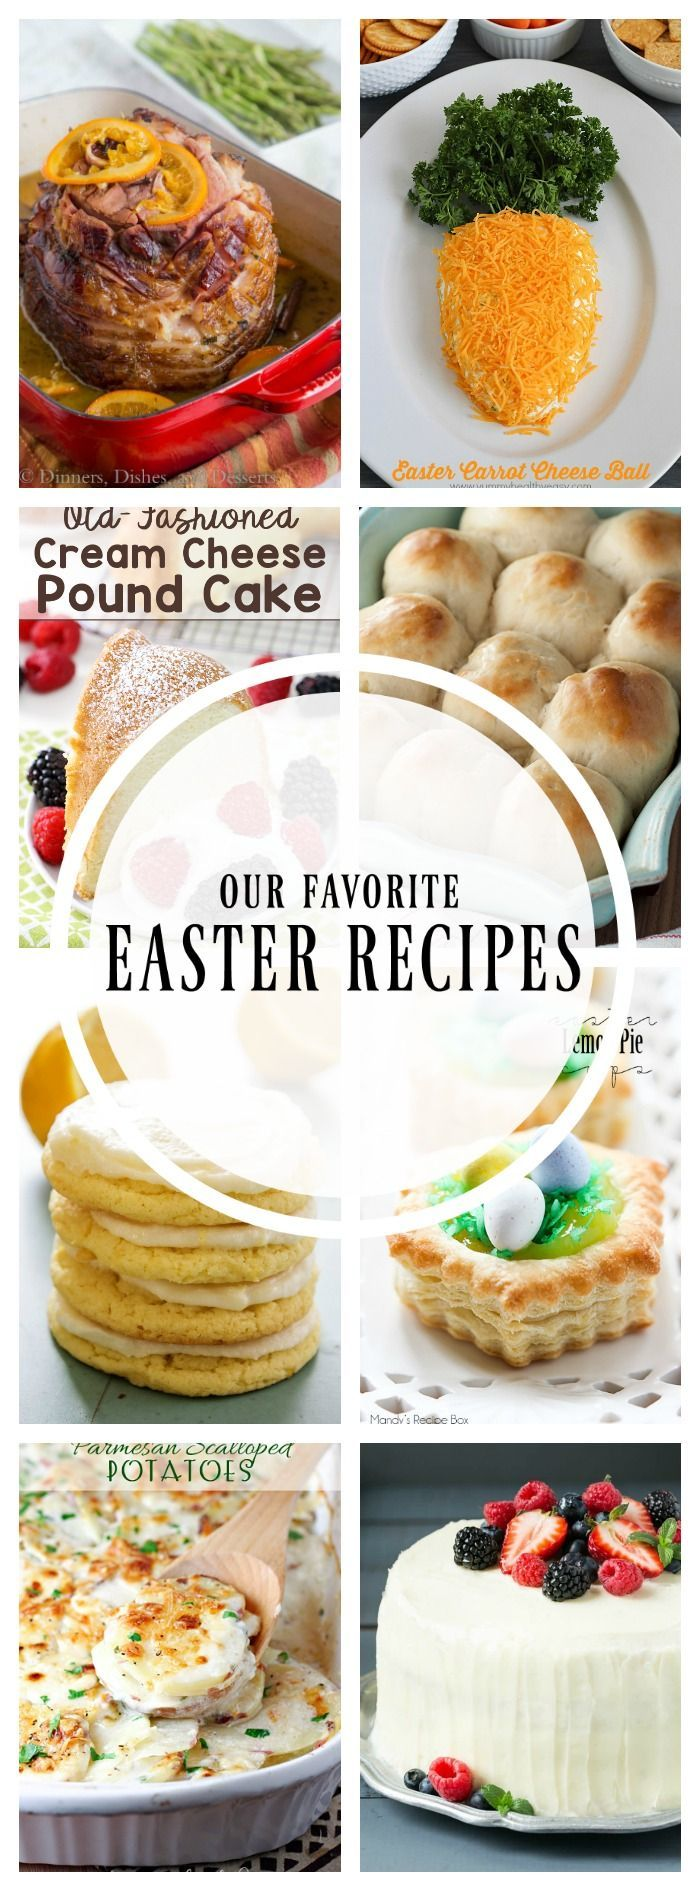 20+ of the Best Easter Recipes all together in one place! From dinner to dessert, I've got you covered with the best ever recipes for Easter! I hope you can find one or ten recipes to try from this awesome roundup including some of my favorite blogger fri